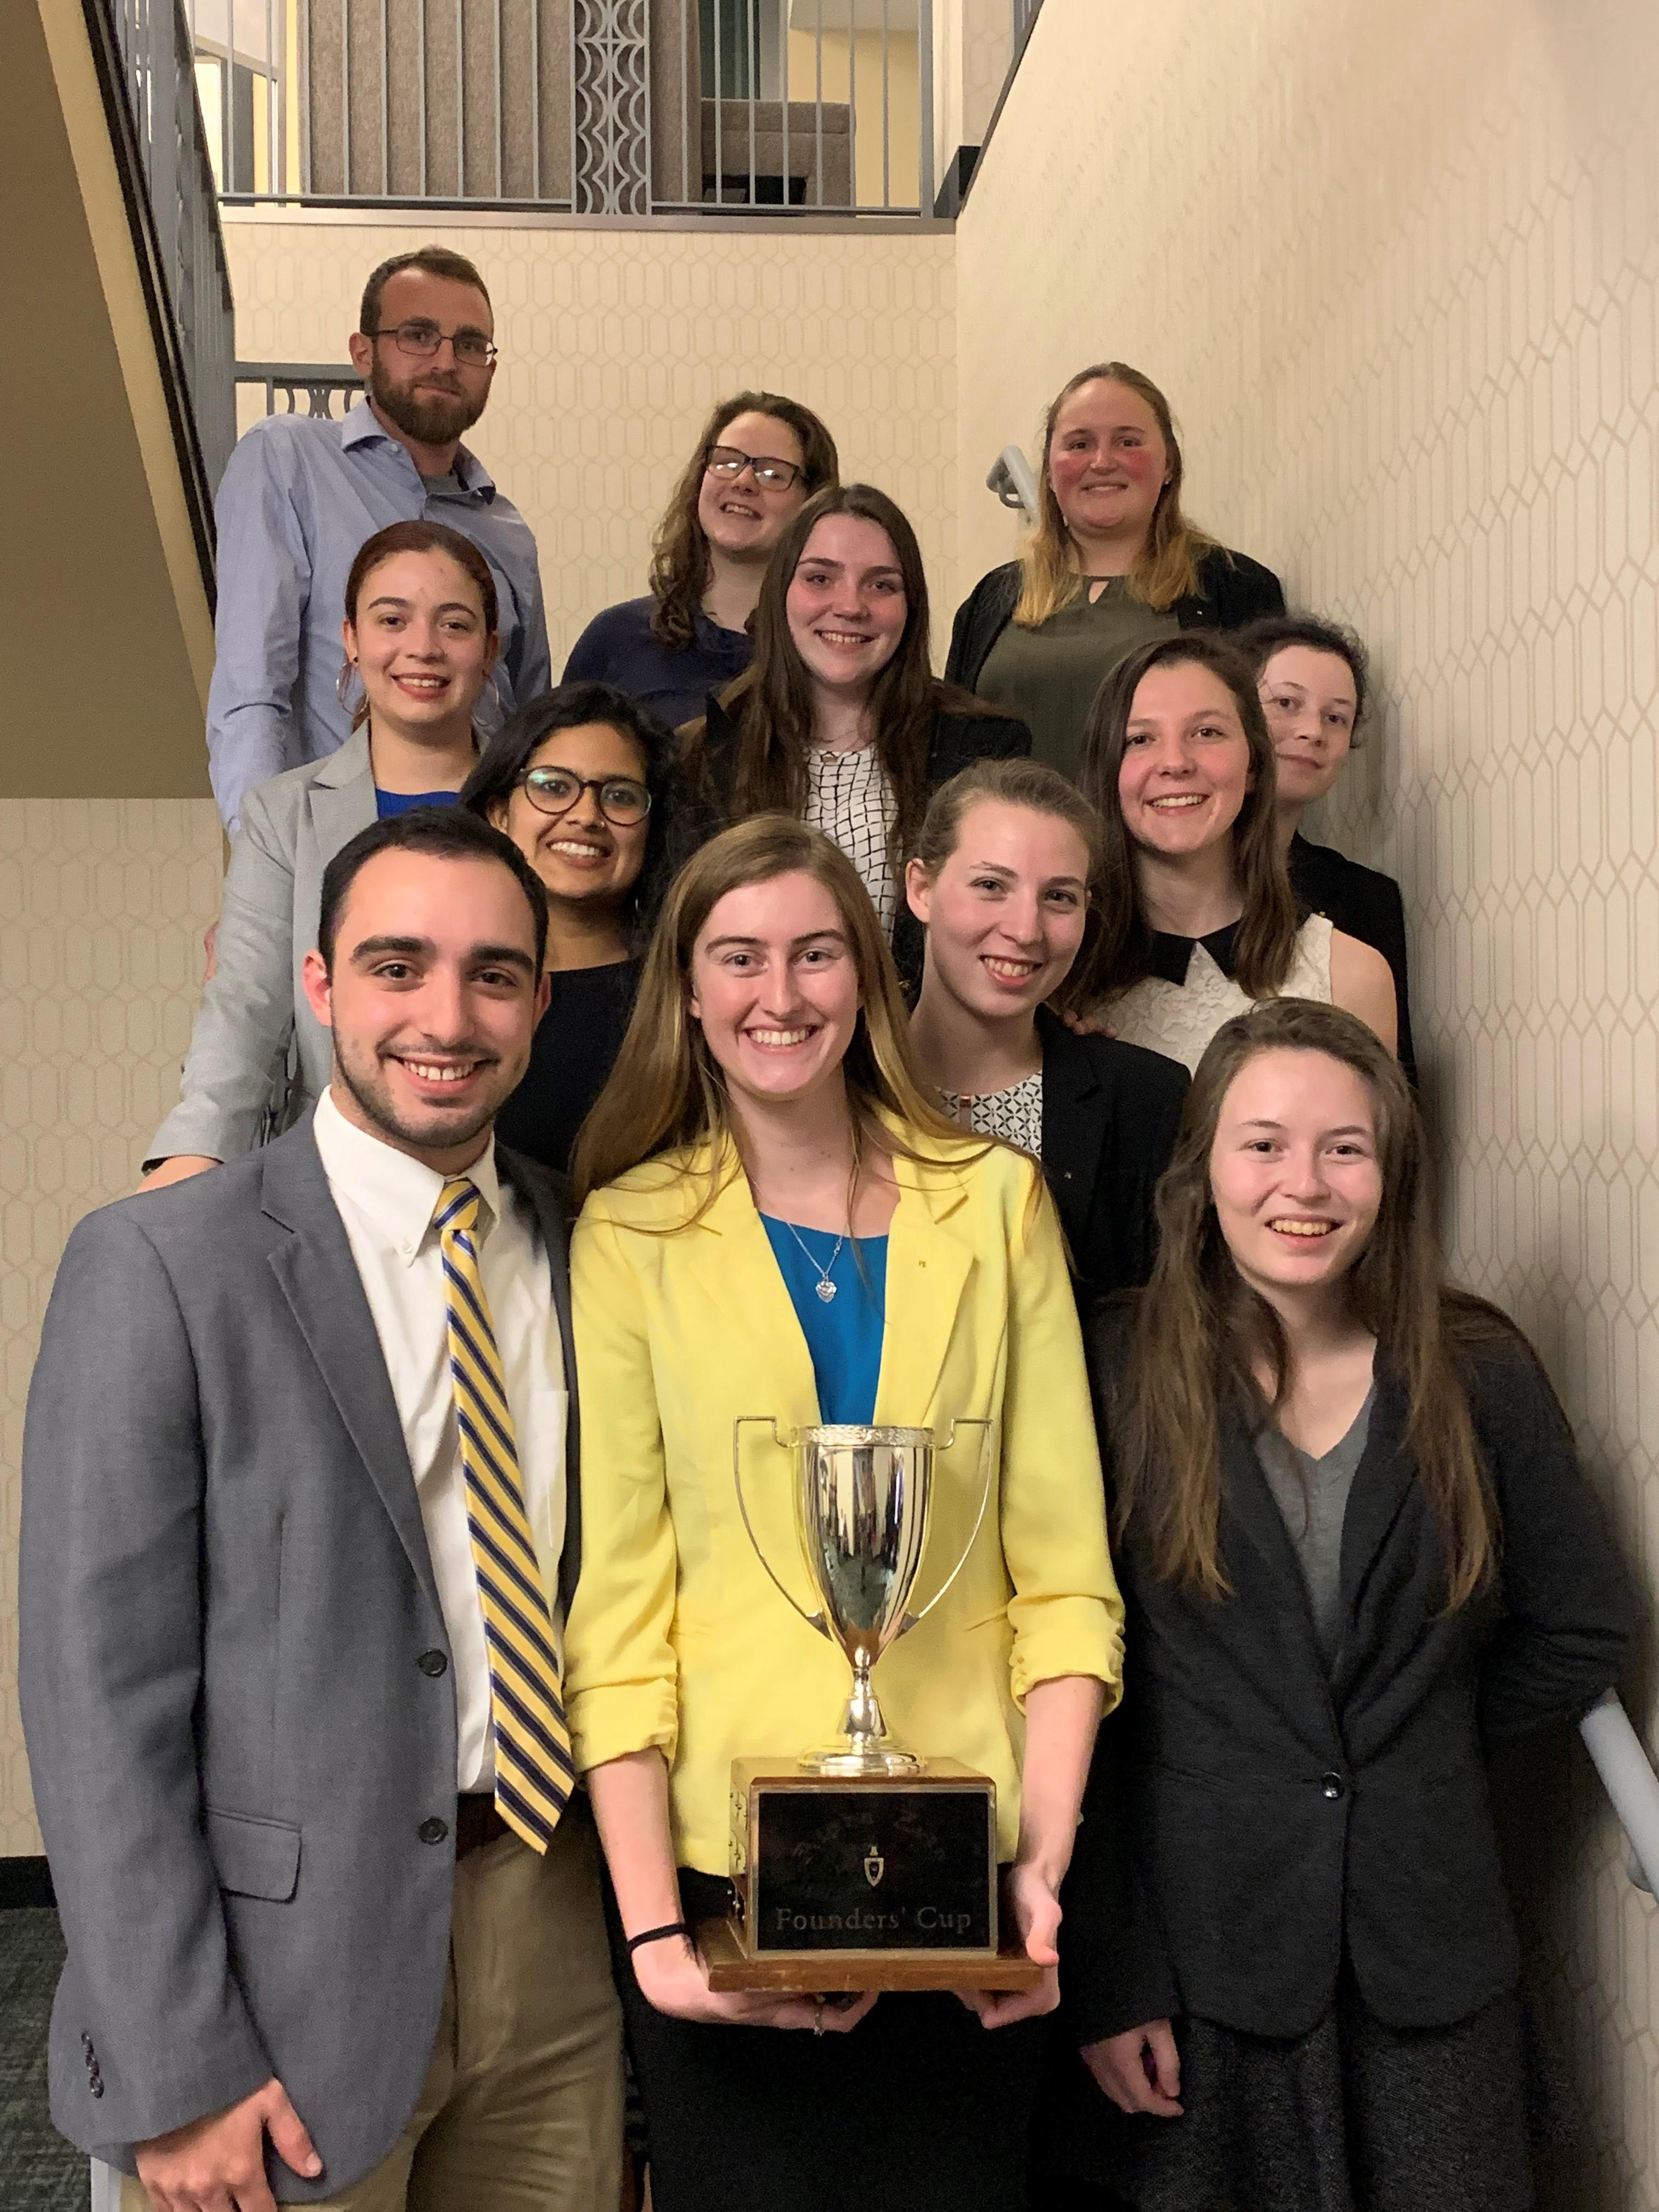 Cornell Wins 2019 Founder's Cup